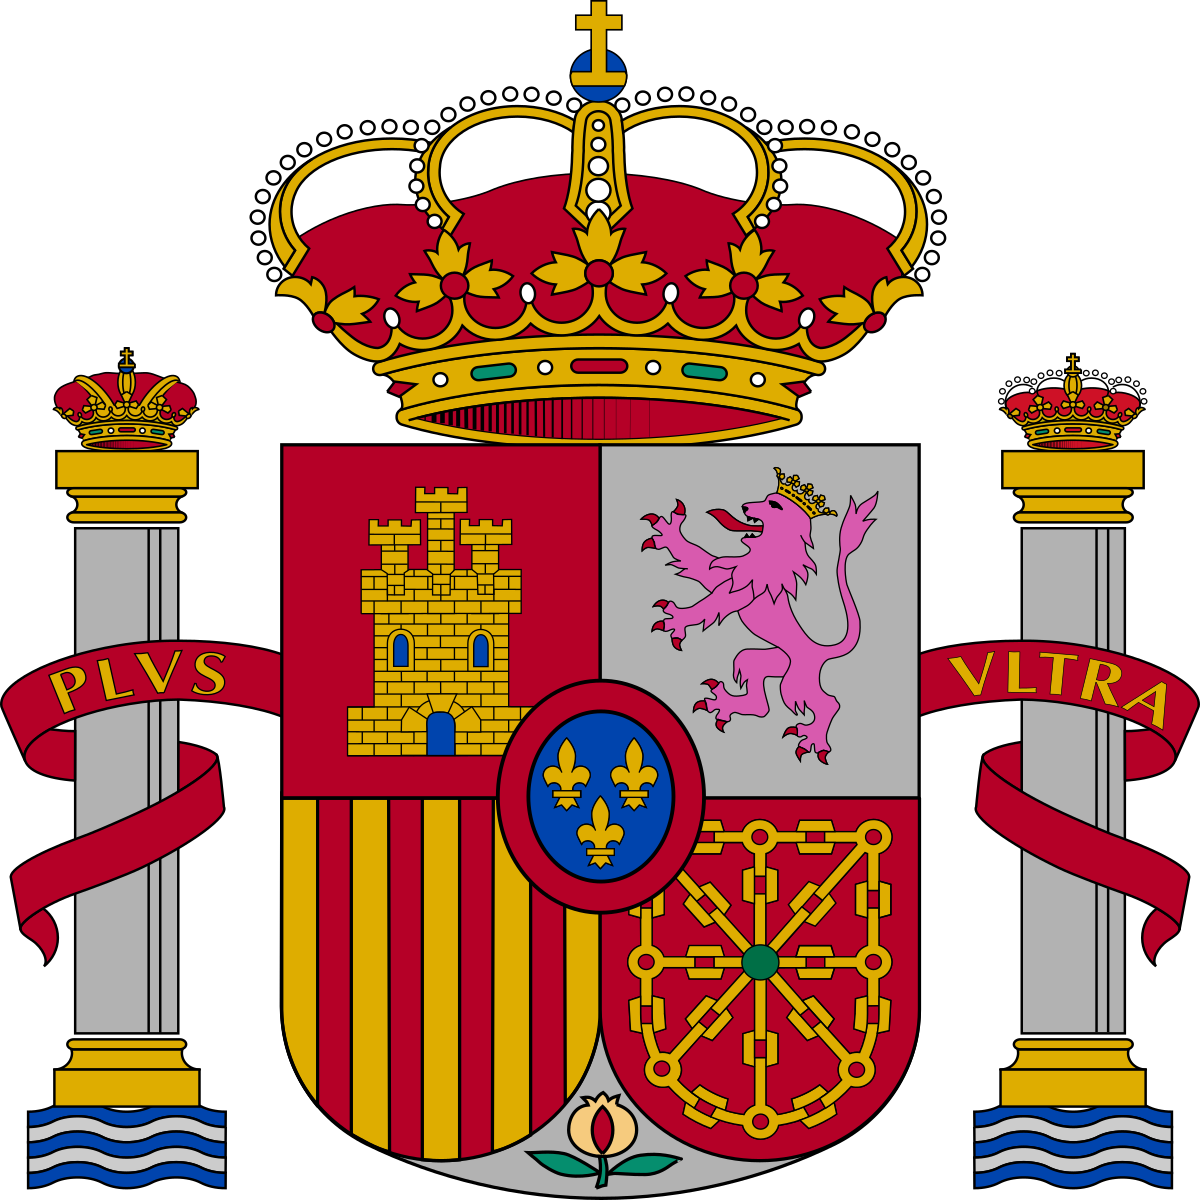 Spanish nationality law wikipedia. Democracy clipart class vice president